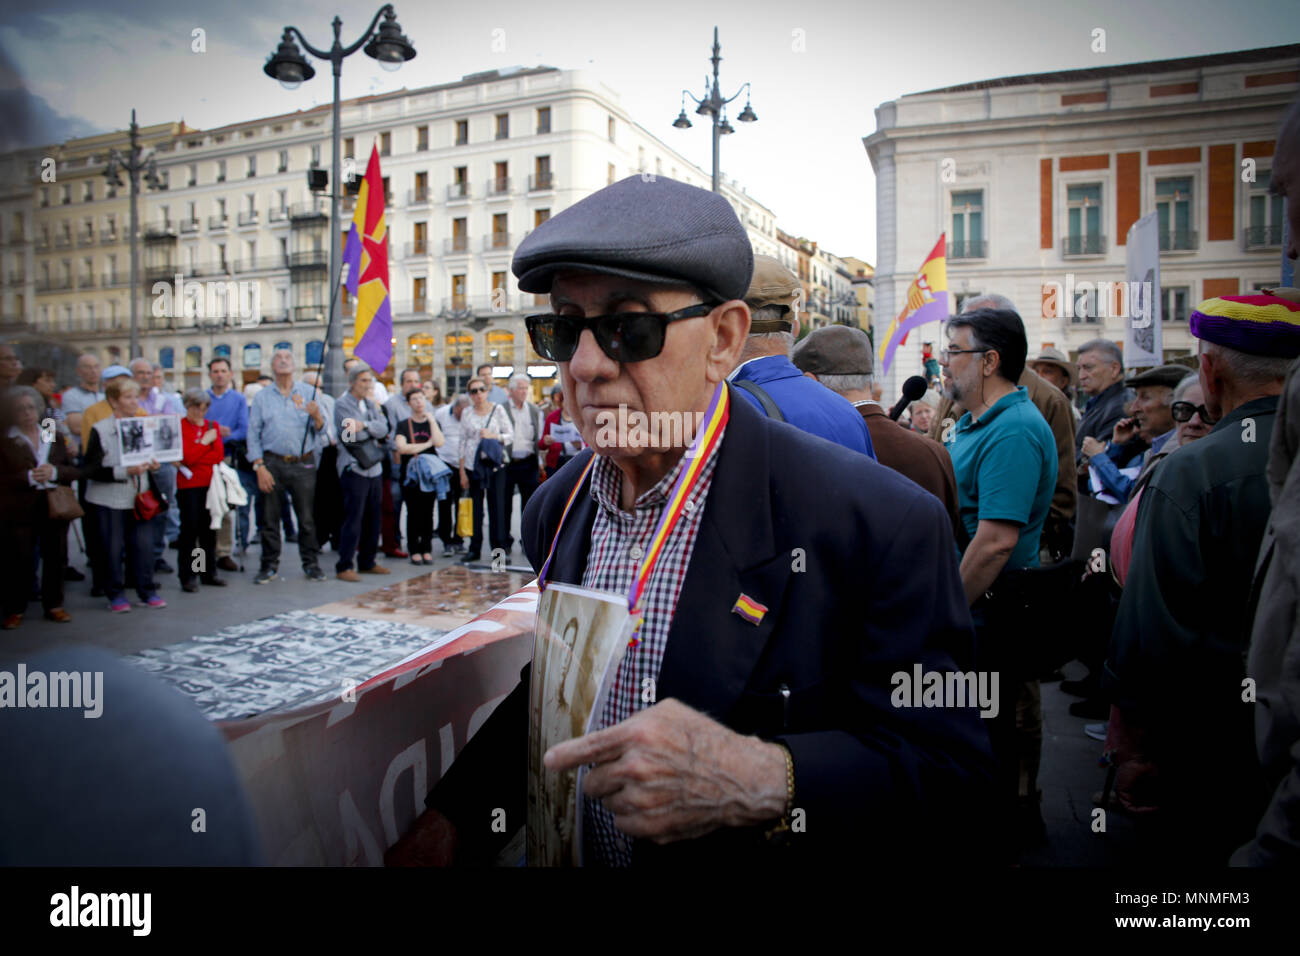 Madrid, Spain. 17th May, 2018. Hundreds of demonstrators meet at the Puerta del Sol in Madrid, several people with flags of the Republic and photos of missing relatives hanging in the chest are manifested with fists held high in the center of Madrid.Demonstrators gathered in the center of Madrid in a remembrance rally for those who has lost their lives under the Franco dictatorship. Credit: Mario Roldan/SOPA Images/ZUMA Wire/Alamy Live News Stock Photo